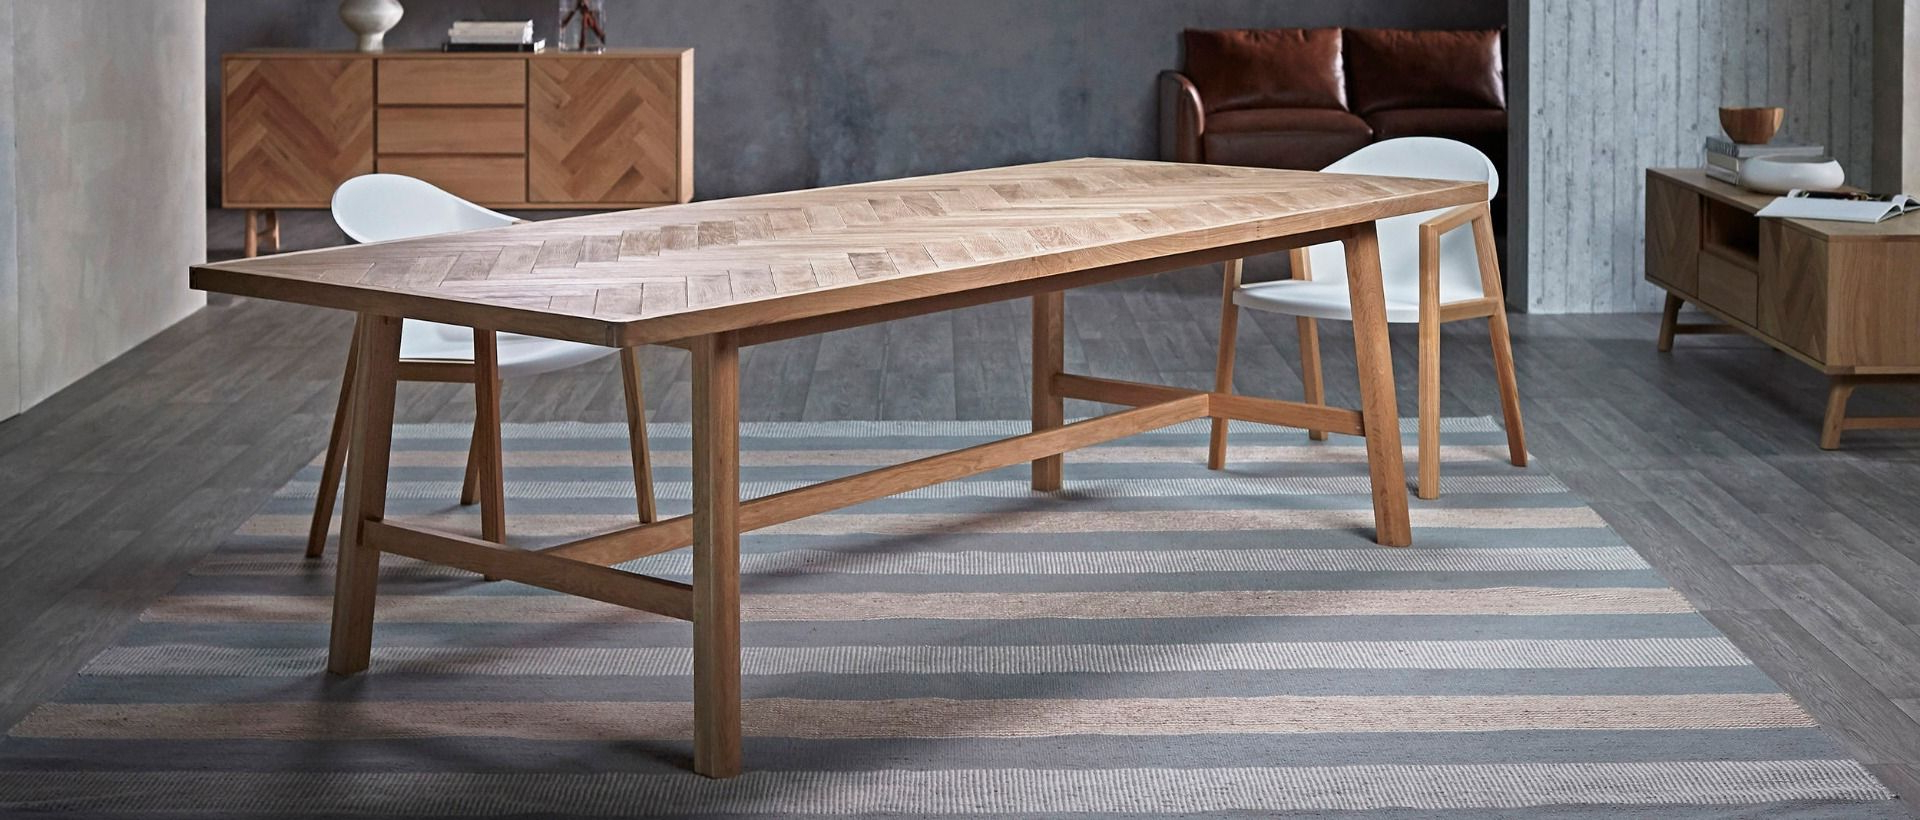 Nick Scali With Regard To 6 Seater Retangular Wood Contemporary Dining Tables (View 22 of 25)